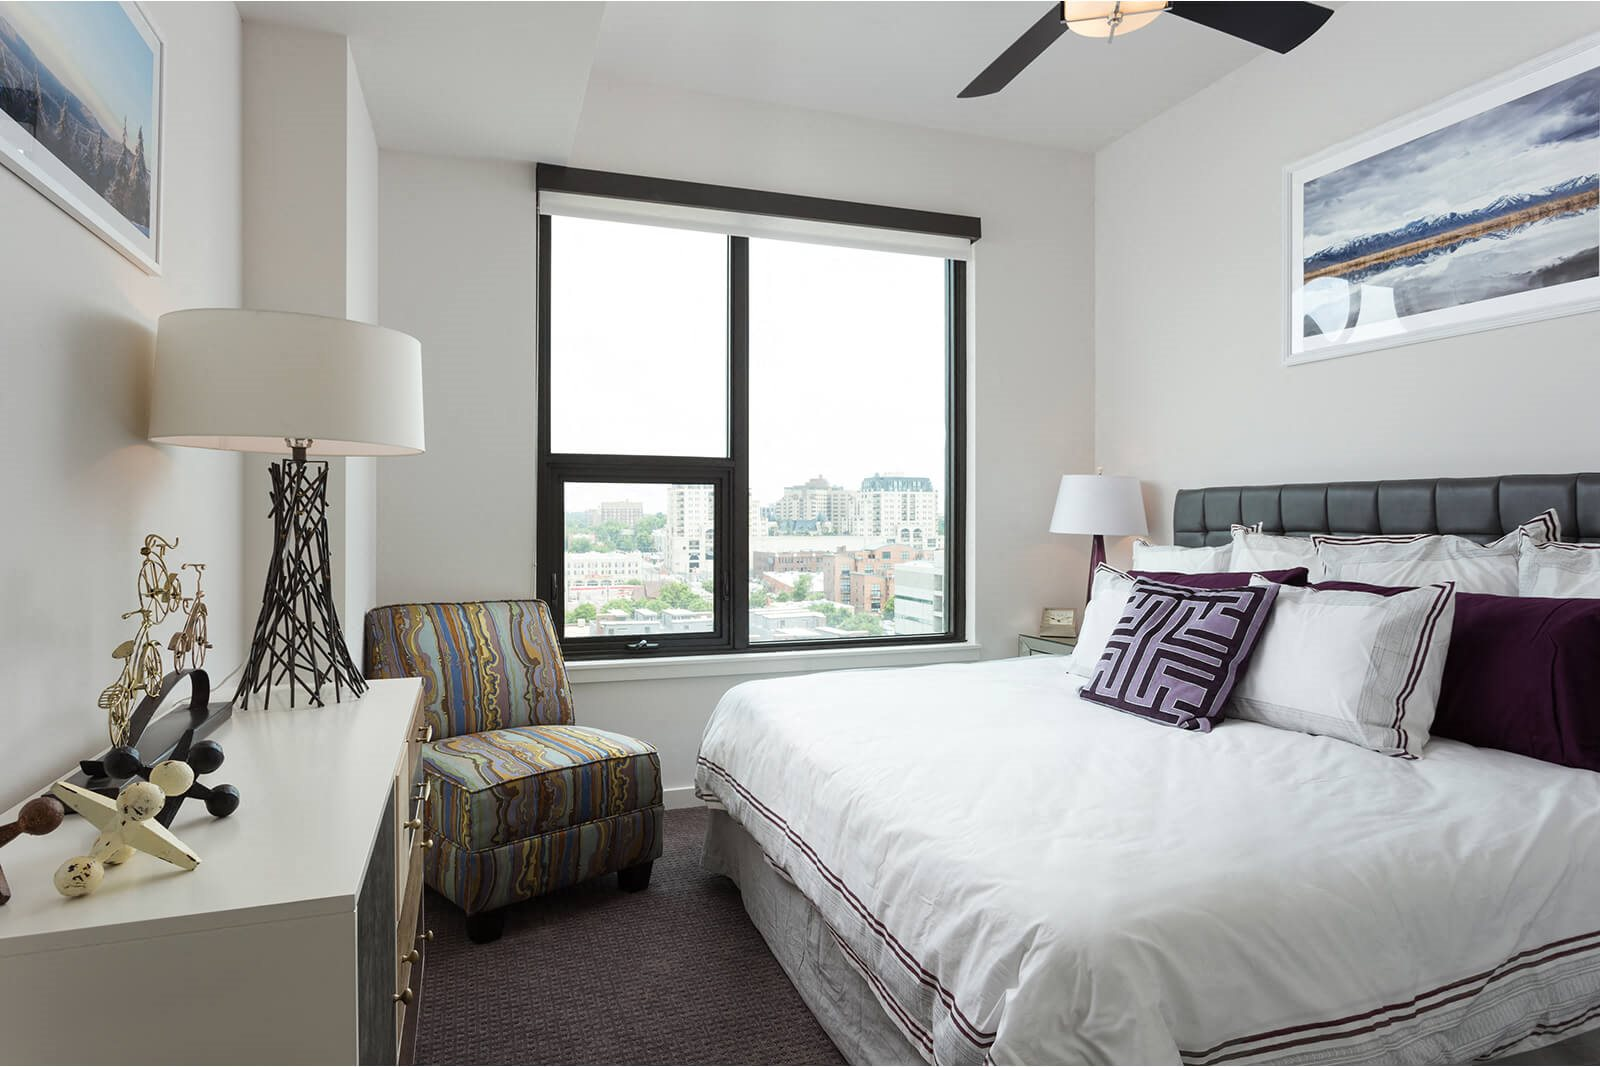 Spacious, Bright Bedroom at 1000 Speer by Windsor, 80204, CO